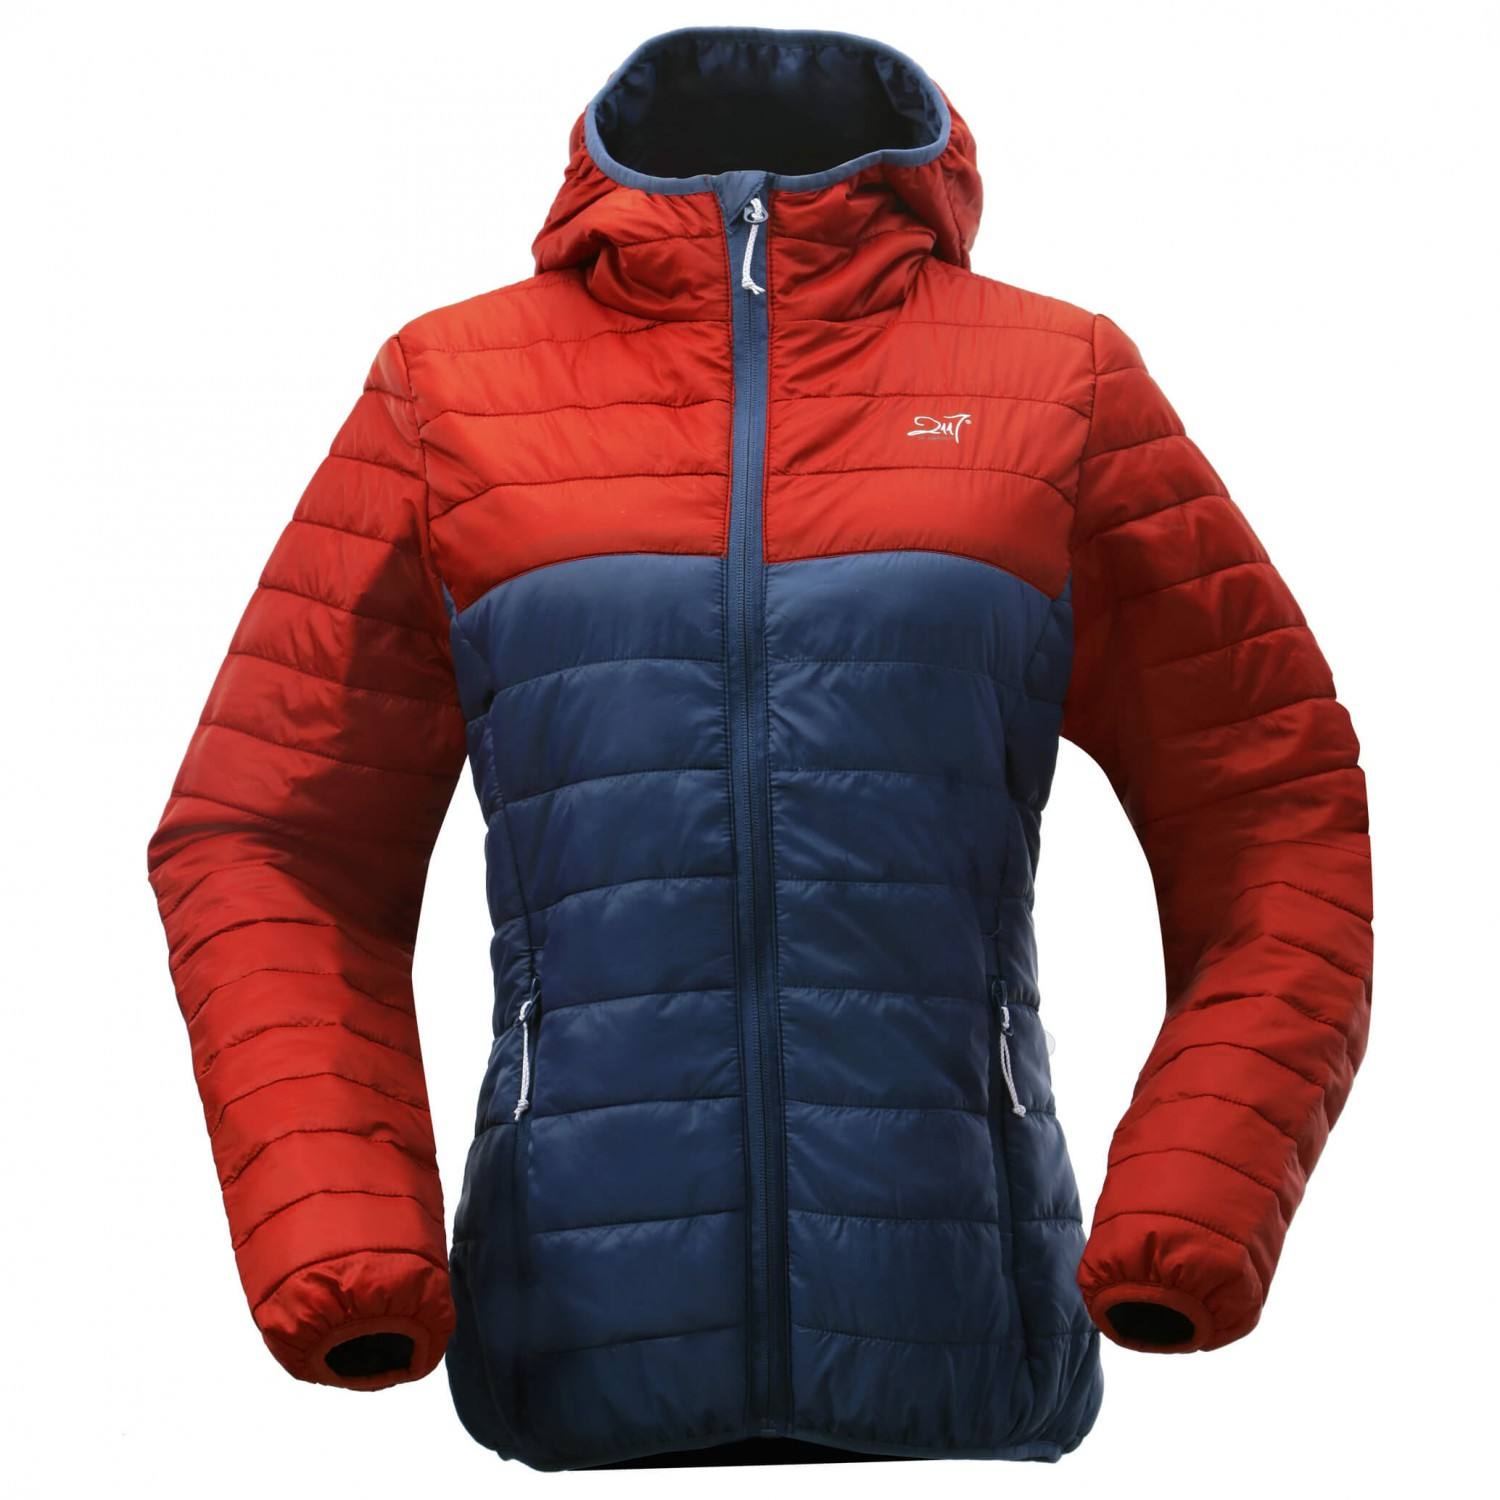 2117 of Sweden Wome s Råberg Jacket L S - Synthetic Jacket Women s ... cfe2e8c10